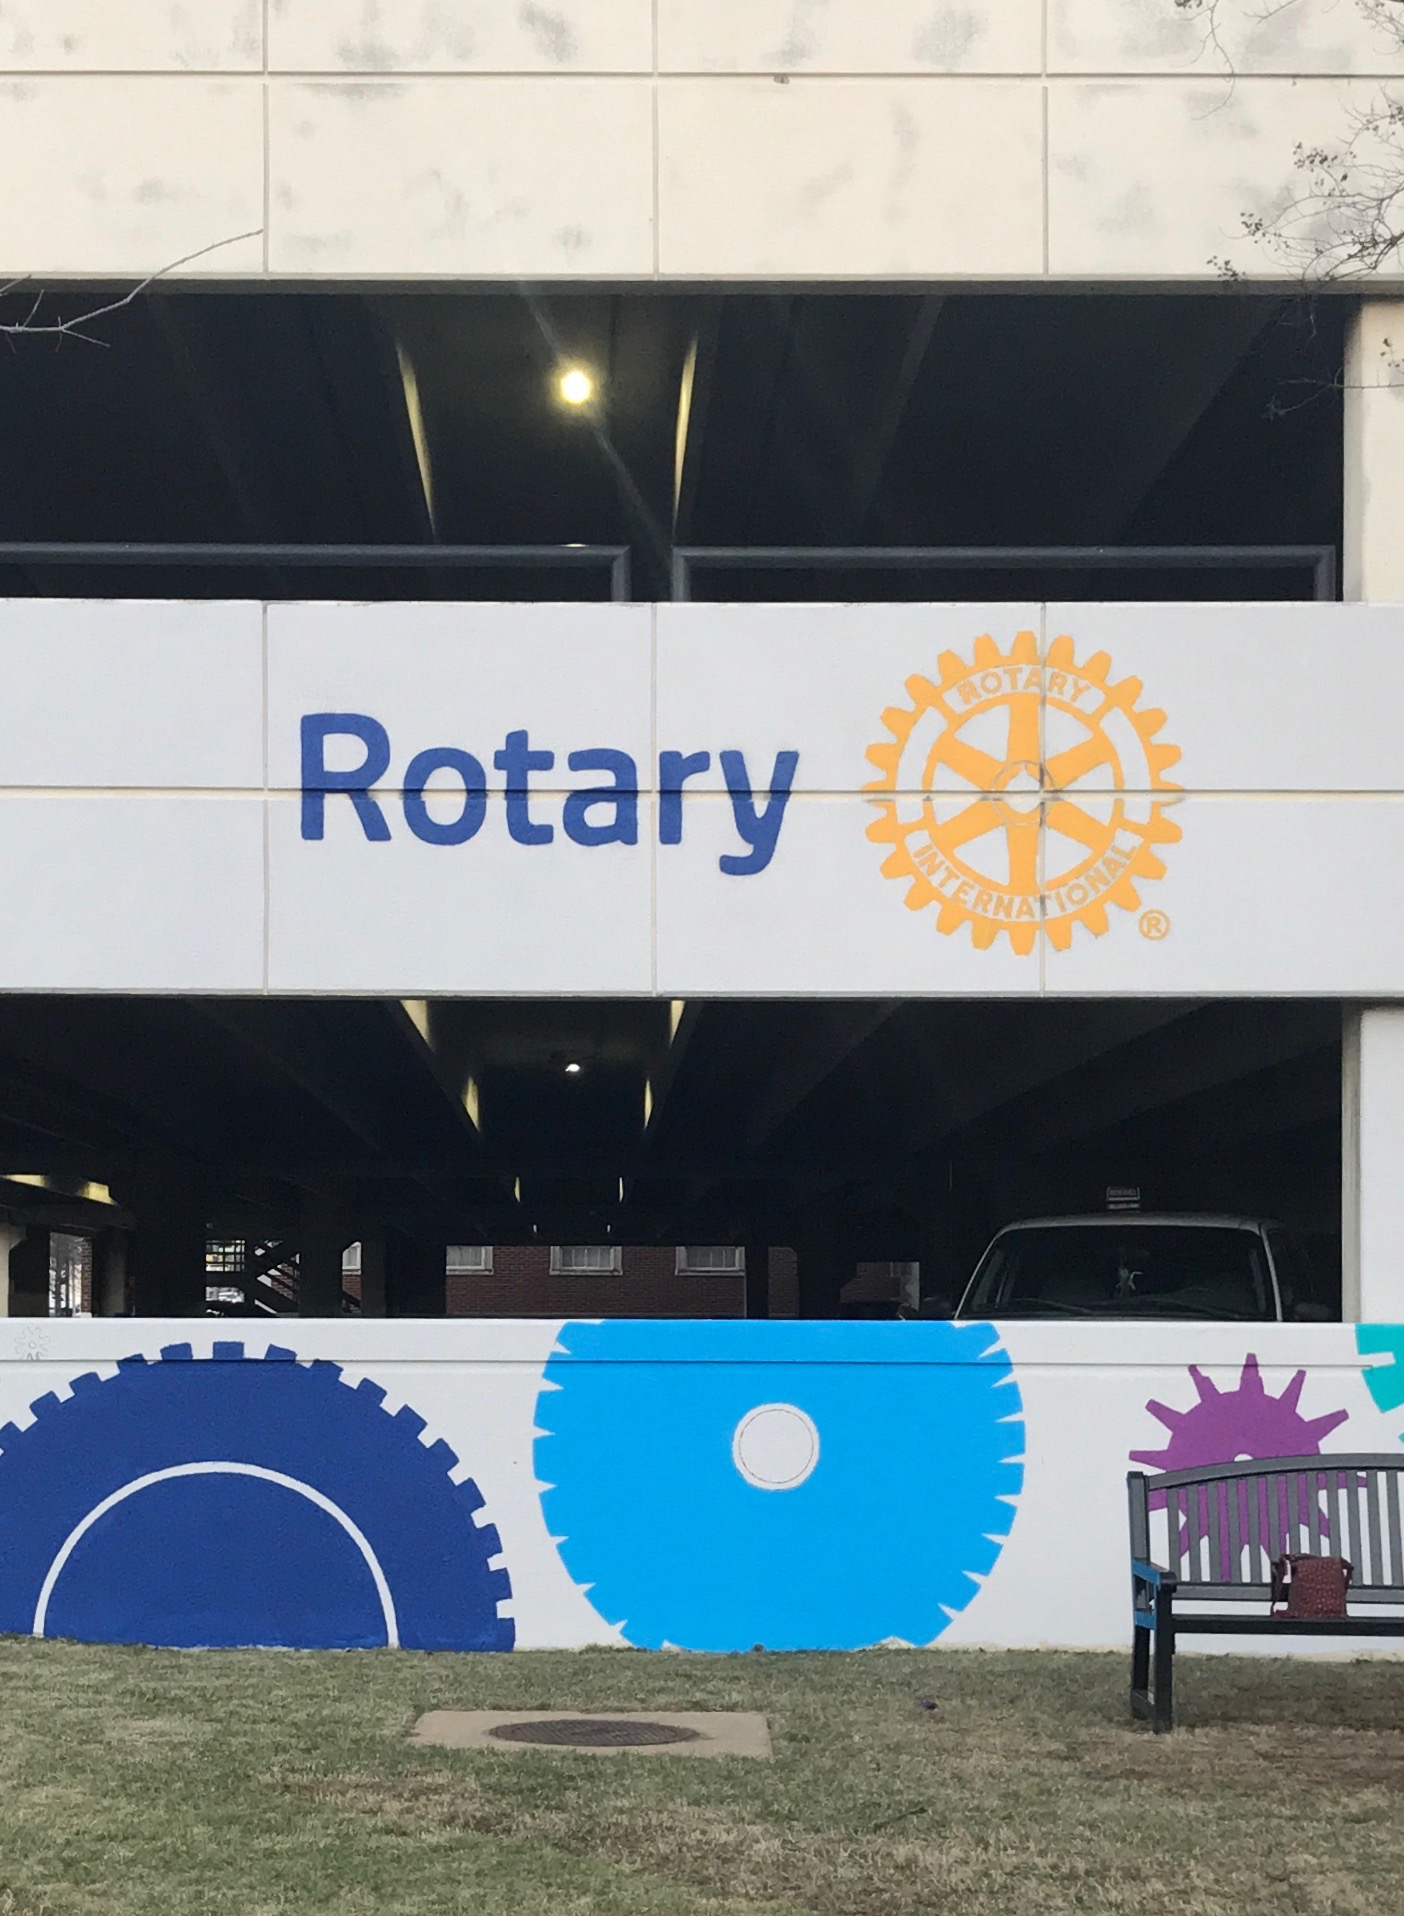 Day Four: Rotary Club logo and cog painting.